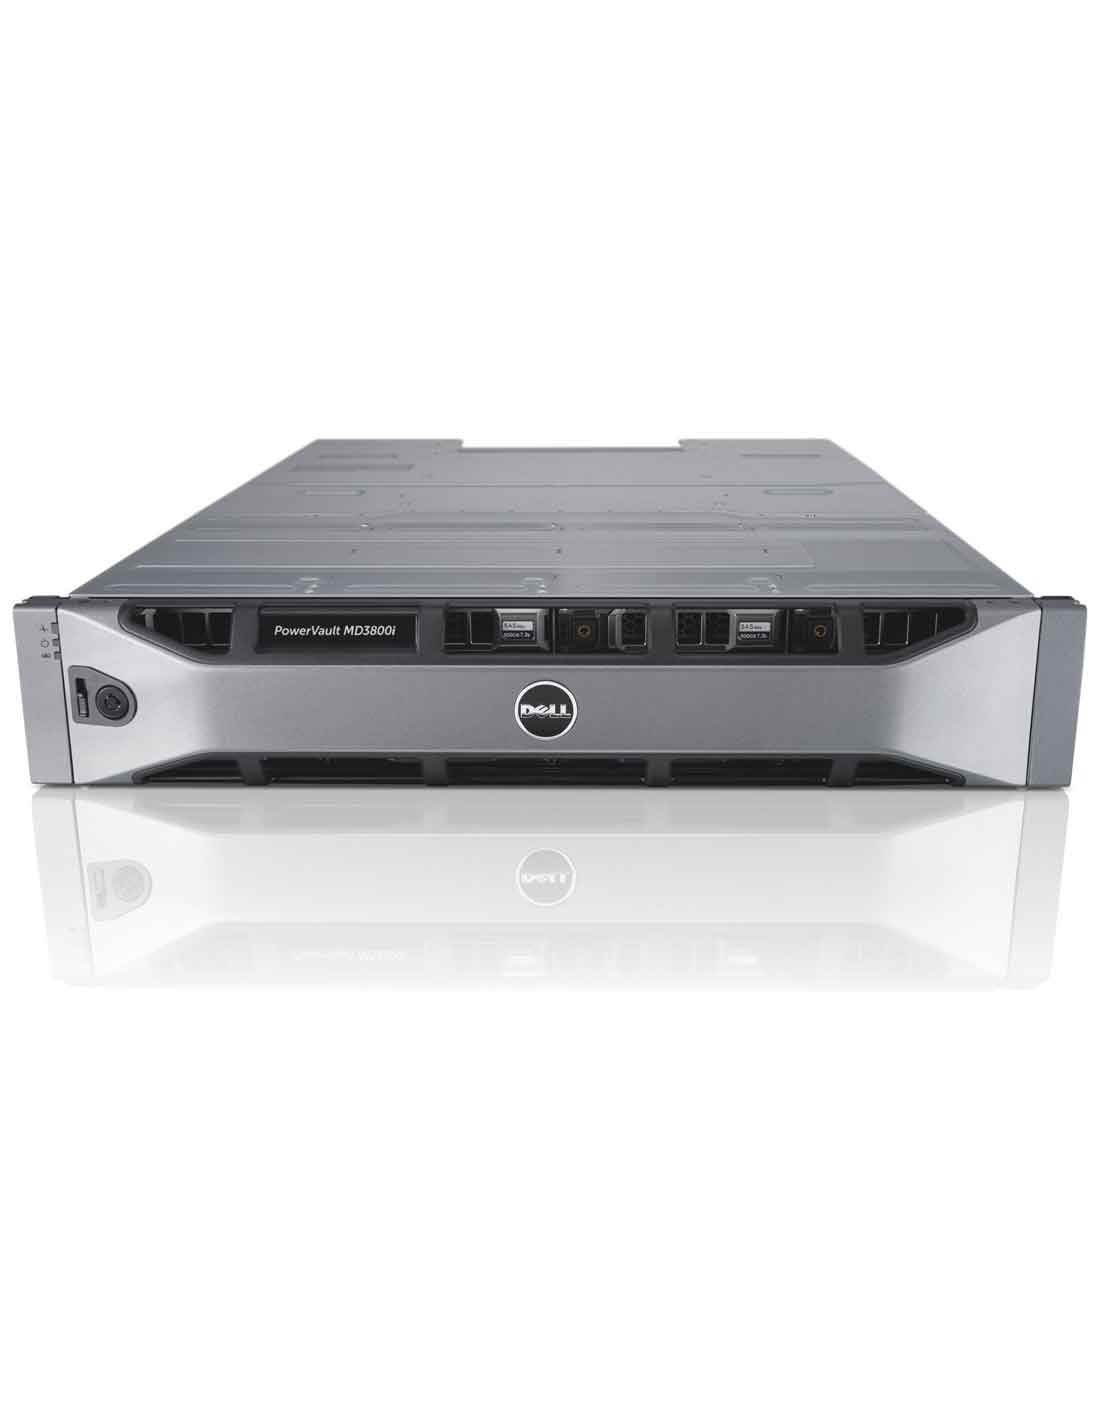 Dell PowerVault MD3800i iSCSI (10 GbE) at the cheapest price and fast free delivery in Dubai.